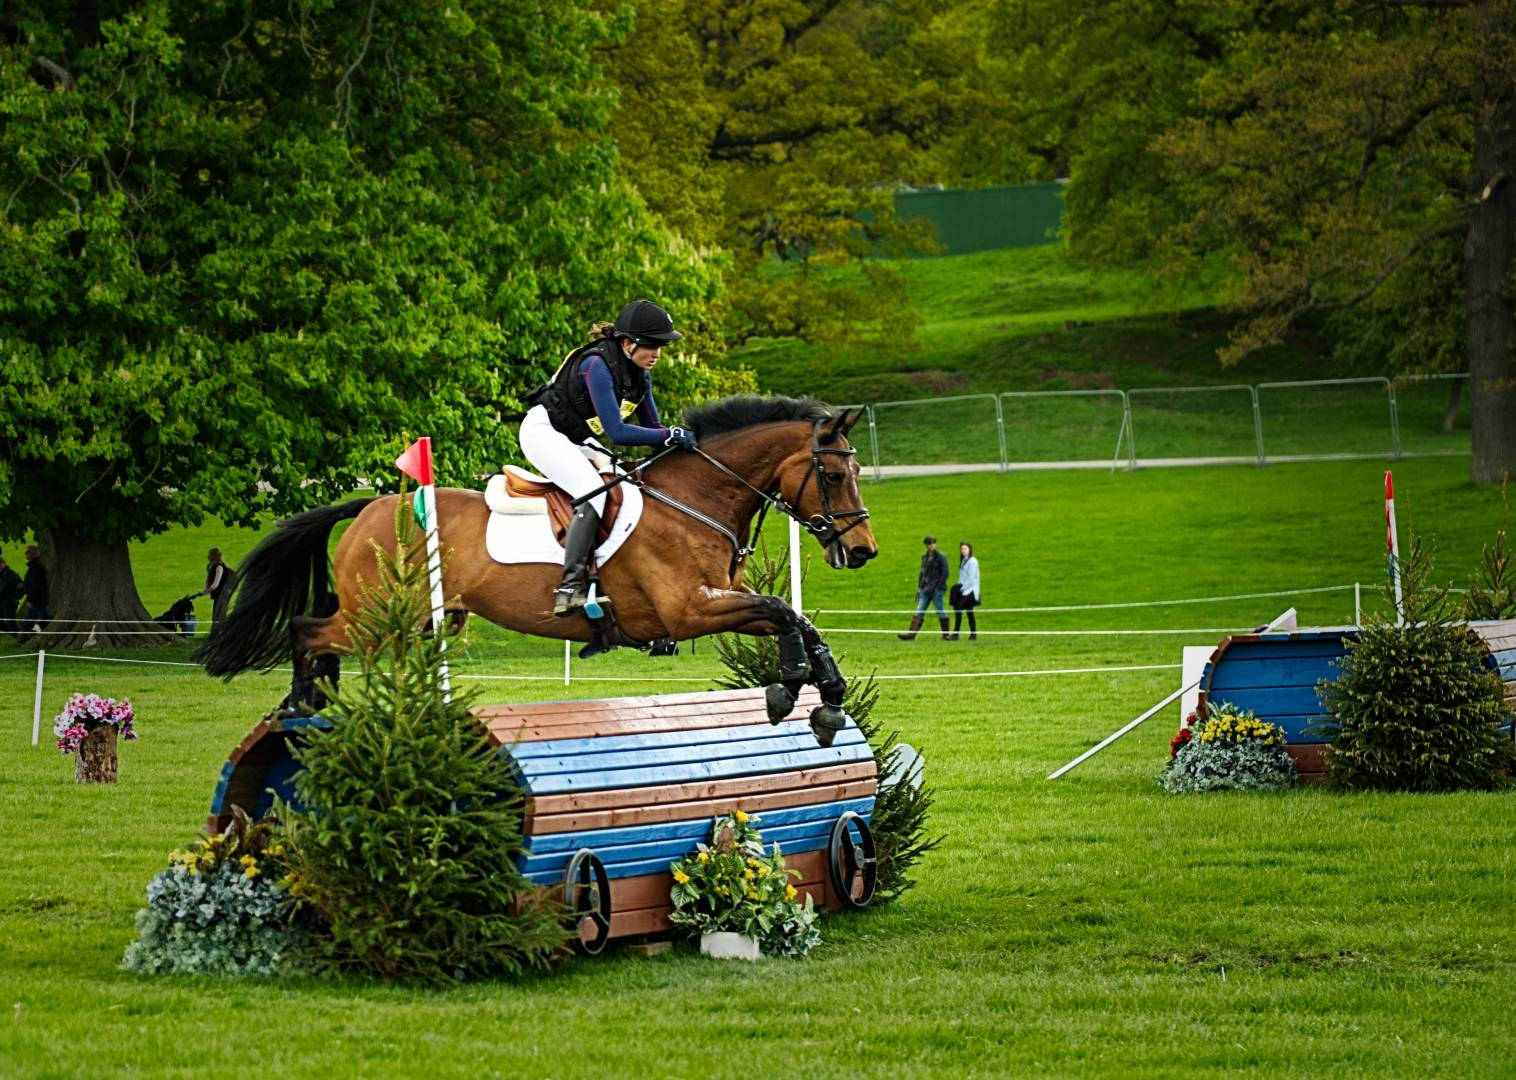 Chatsworth House - Horse Trials, 11th May 2019. Fujifilm XT2 - with 50-140mm F2.8, at 61mm, 1/800s, f/2.8, ISO 200